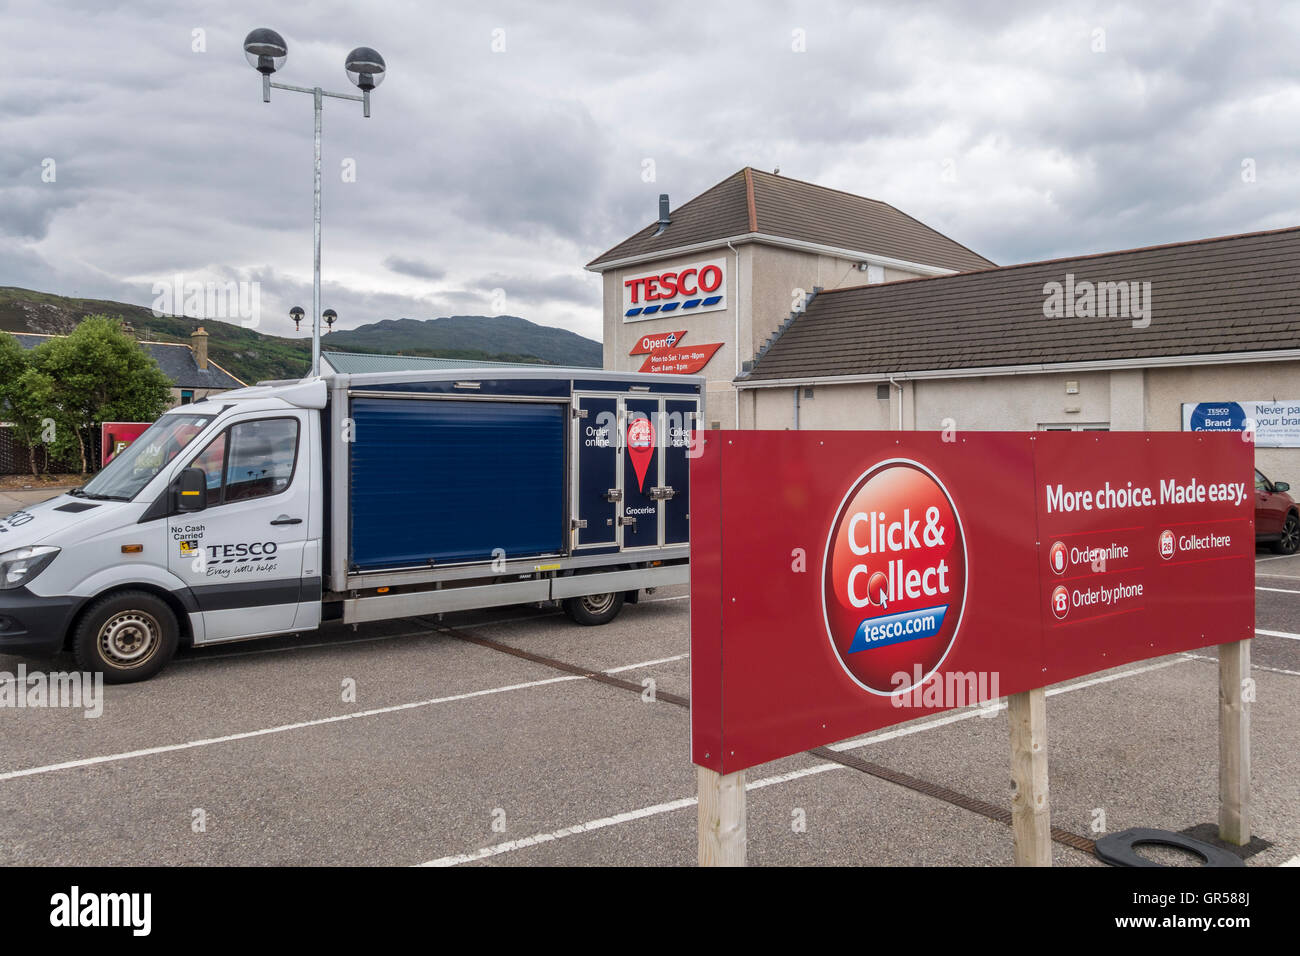 Tesco Click & Collect delivery van outside Ullapool Tesco Superstore. - Stock Image